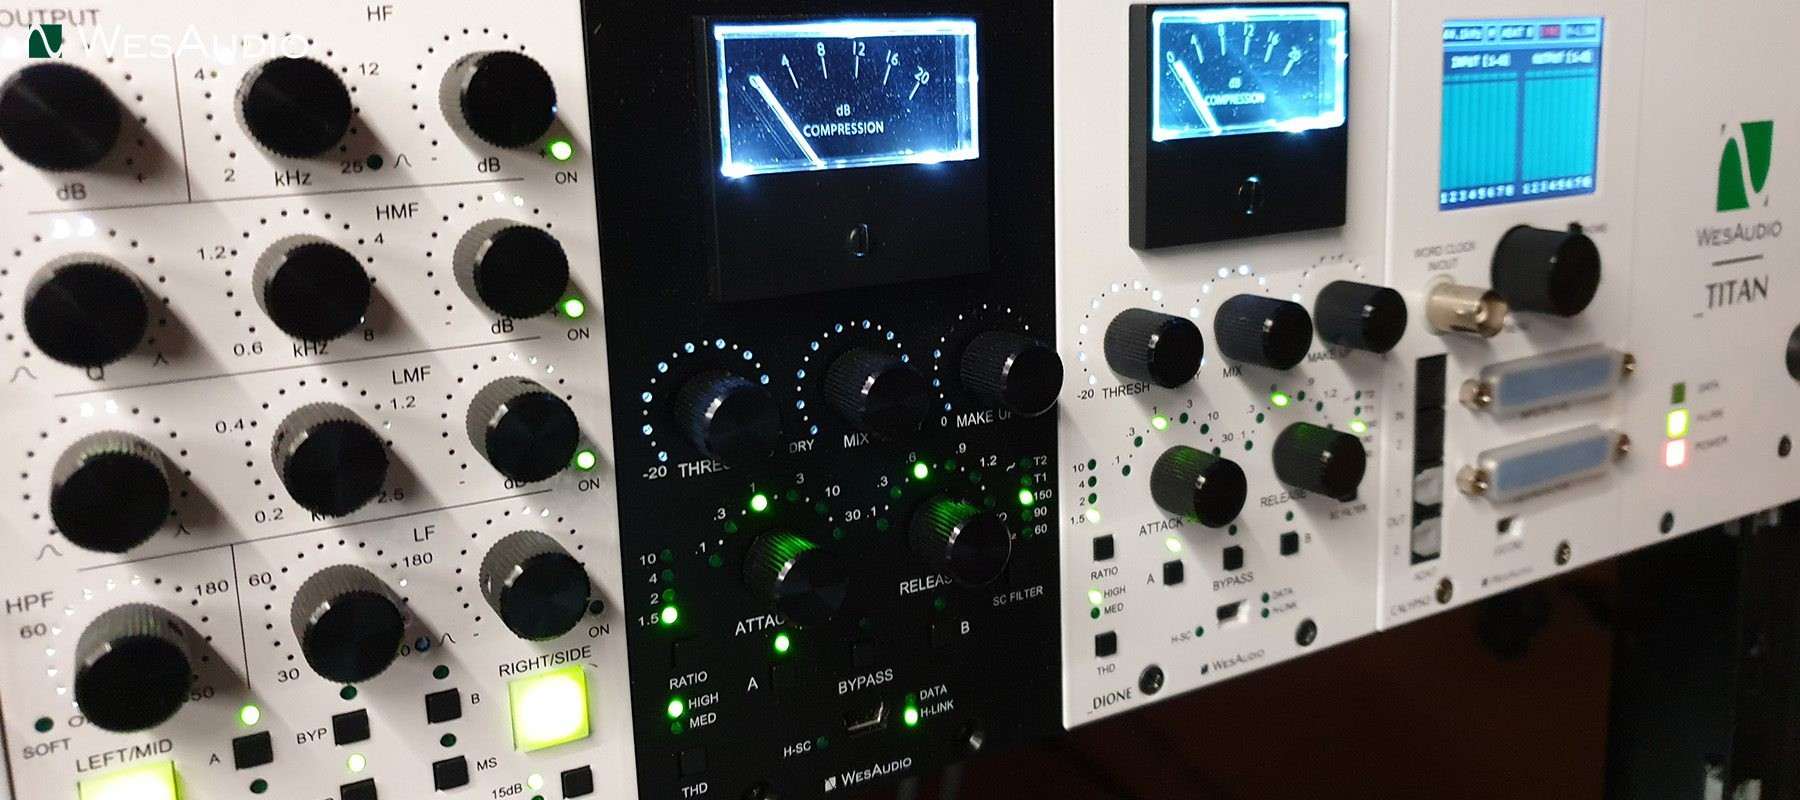 WesAudio _Dione 500 Stereo Compressor Musical Instruments ...